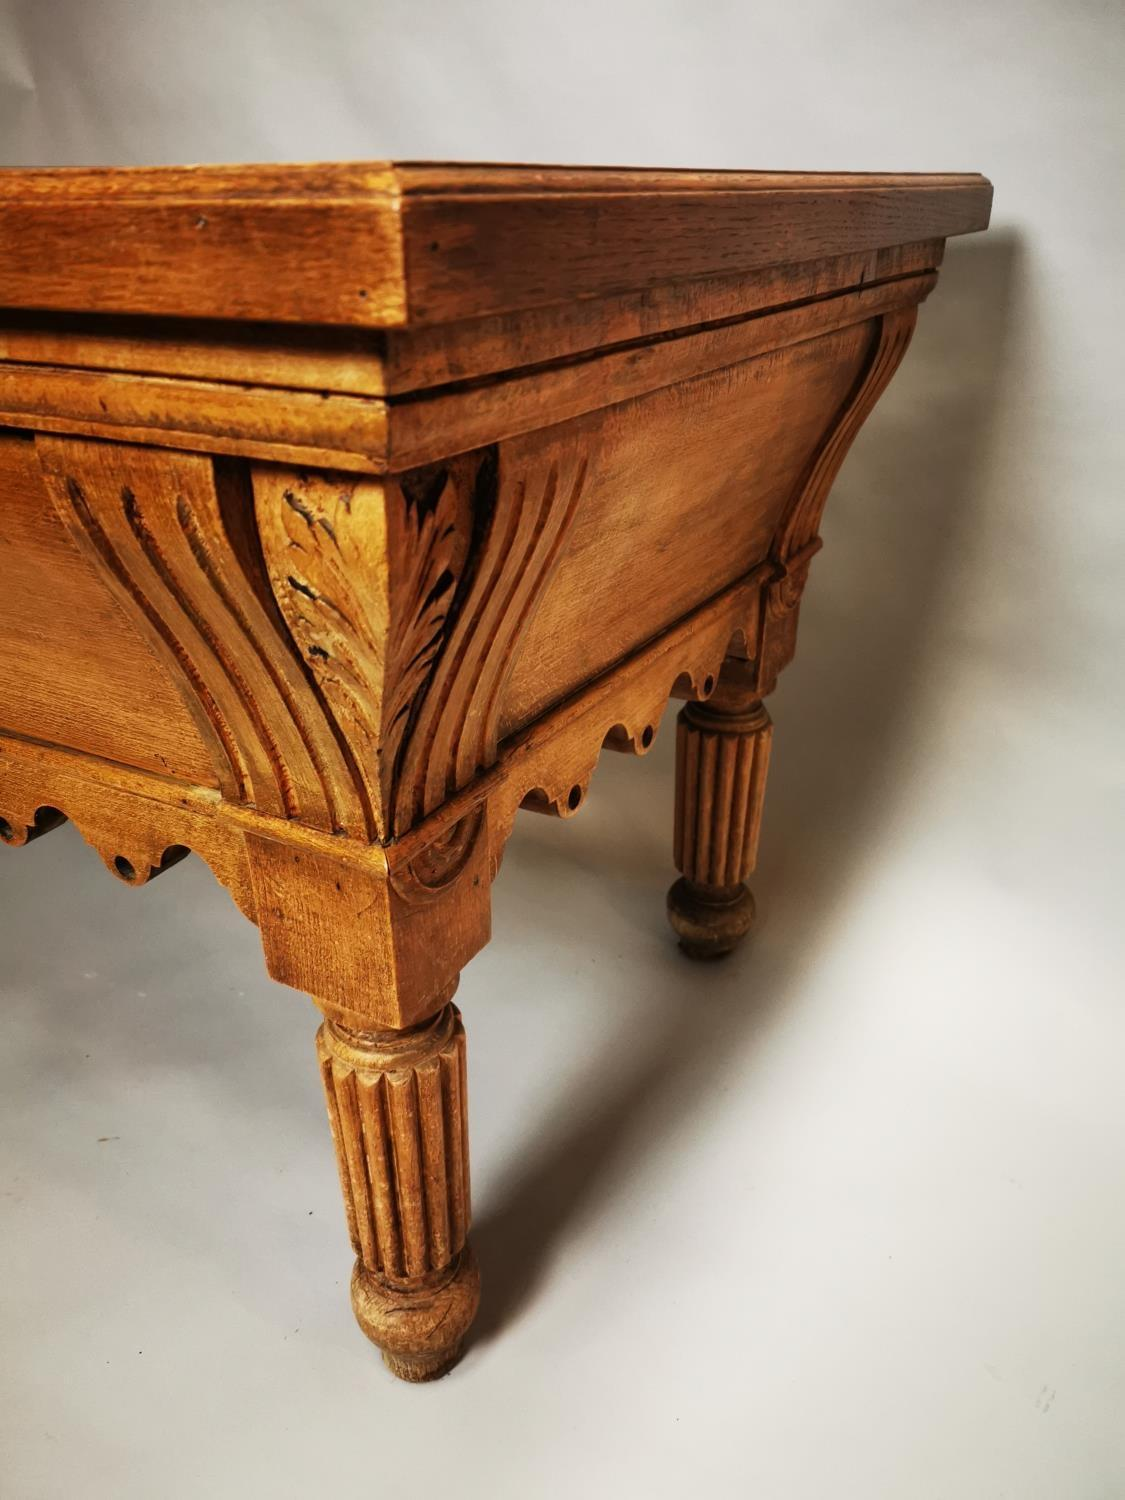 Early 20th C. pine and oak butchers table - Image 11 of 12